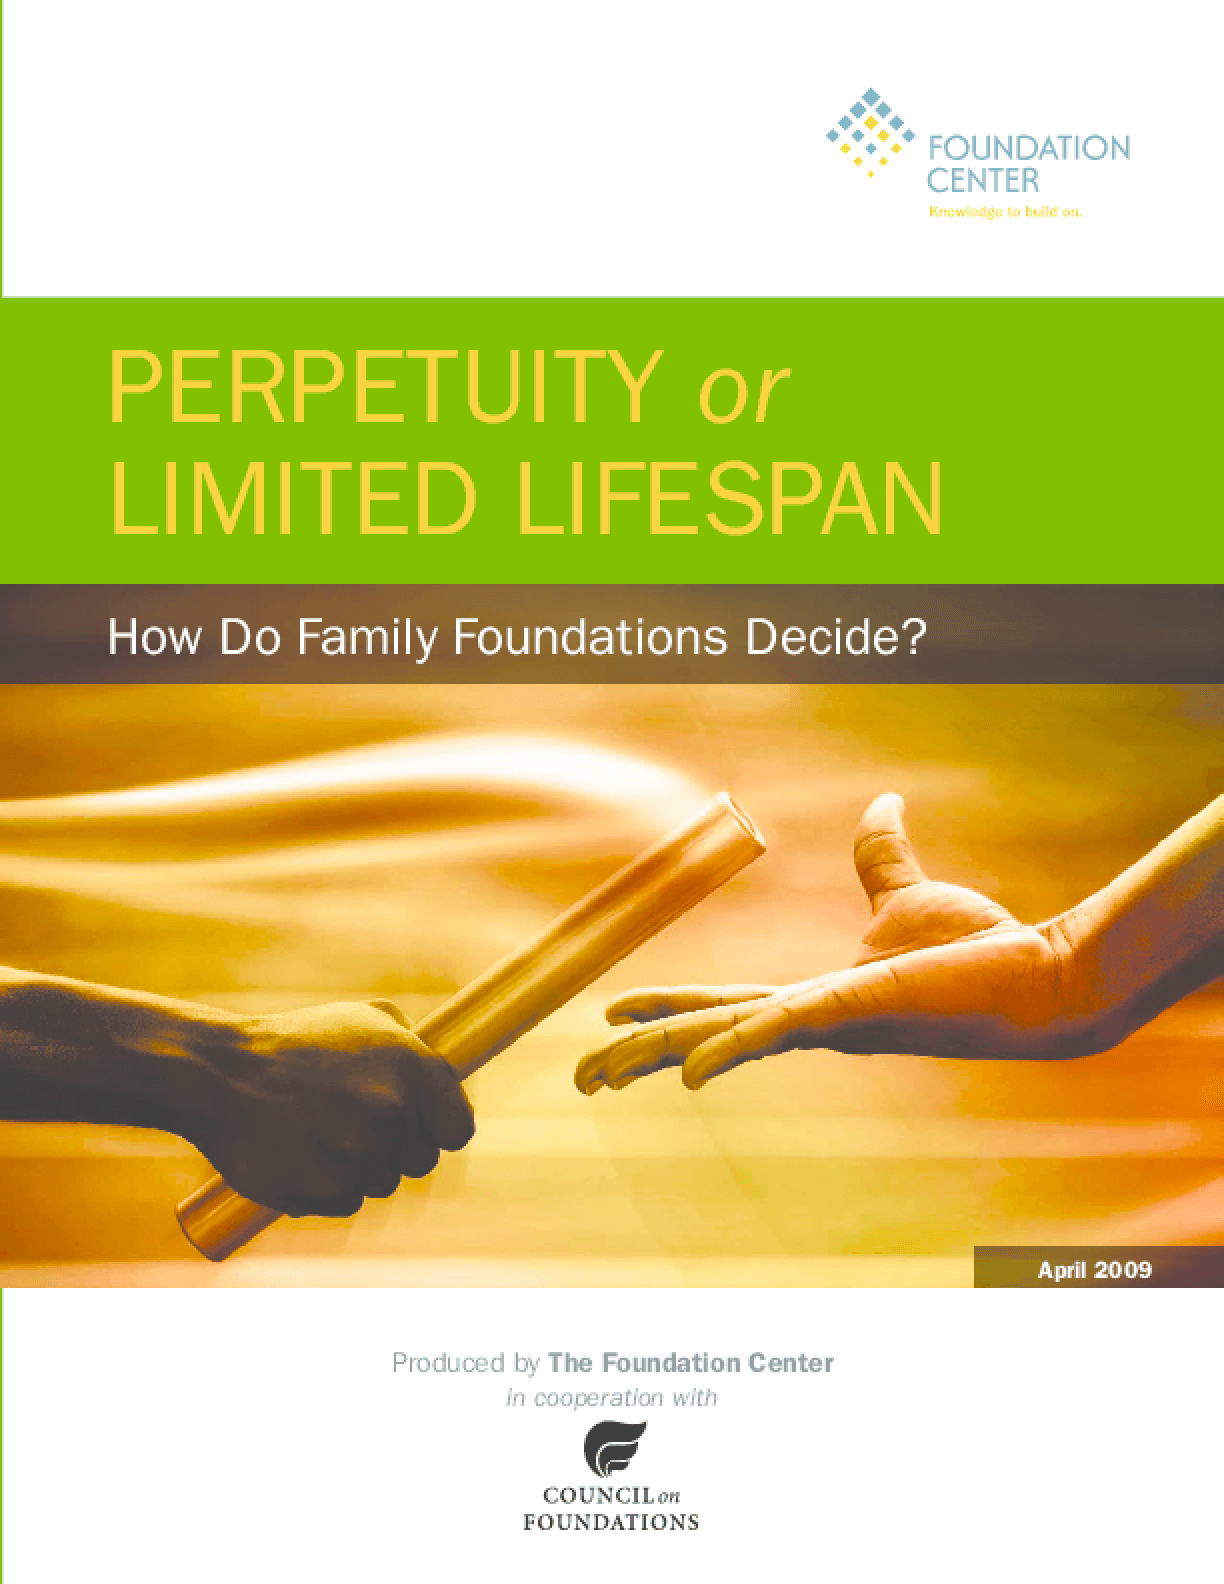 Perpetuity or Limited Lifespan: How Do Family Foundations Decide?